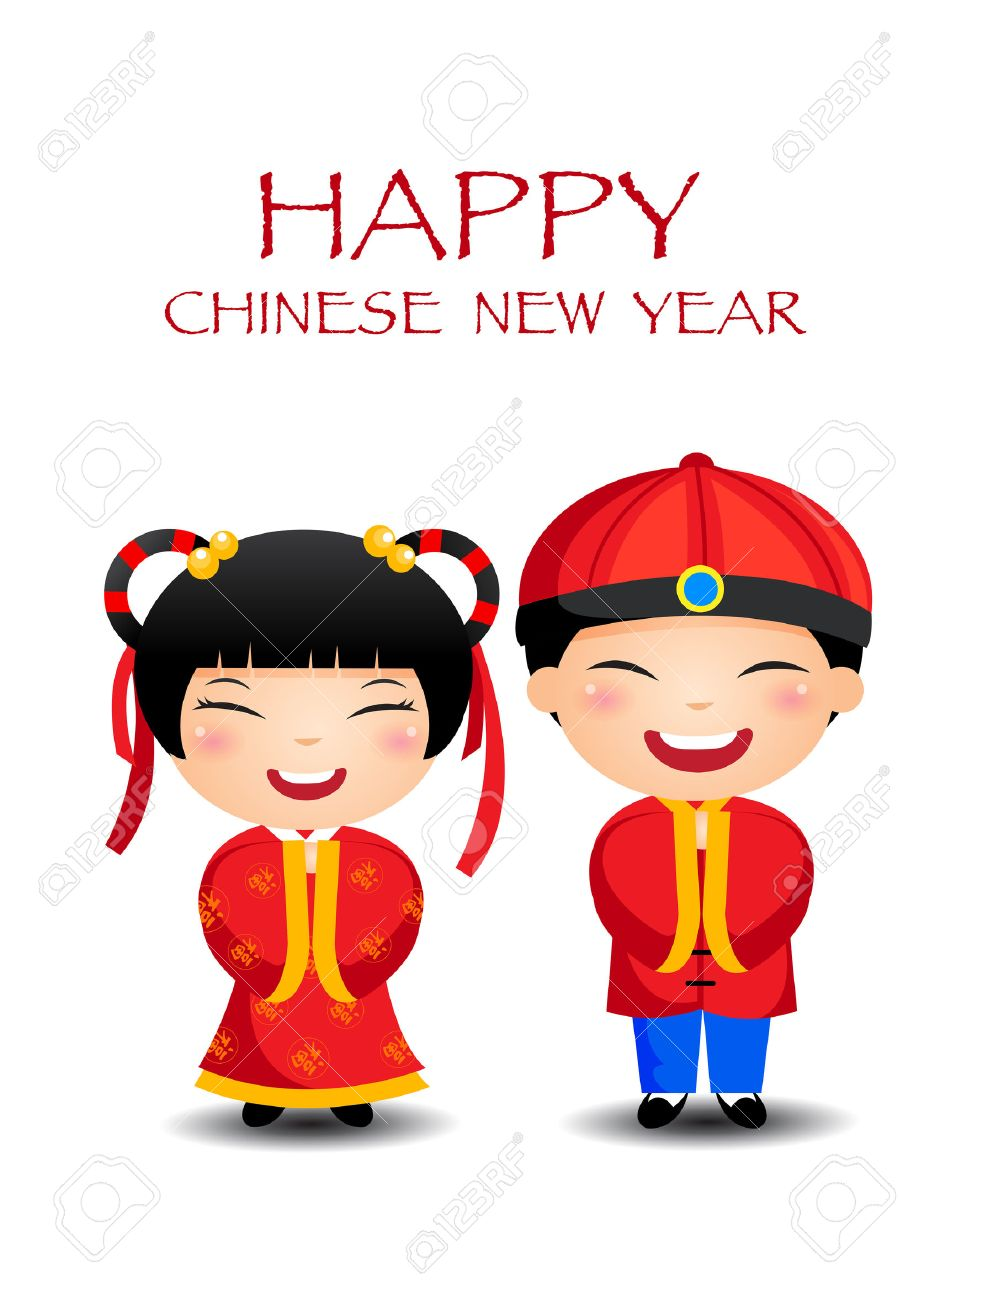 cartoon chinese kids boy girl happy chinese new year stock vector 30898998 - Chinese New Year For Kids